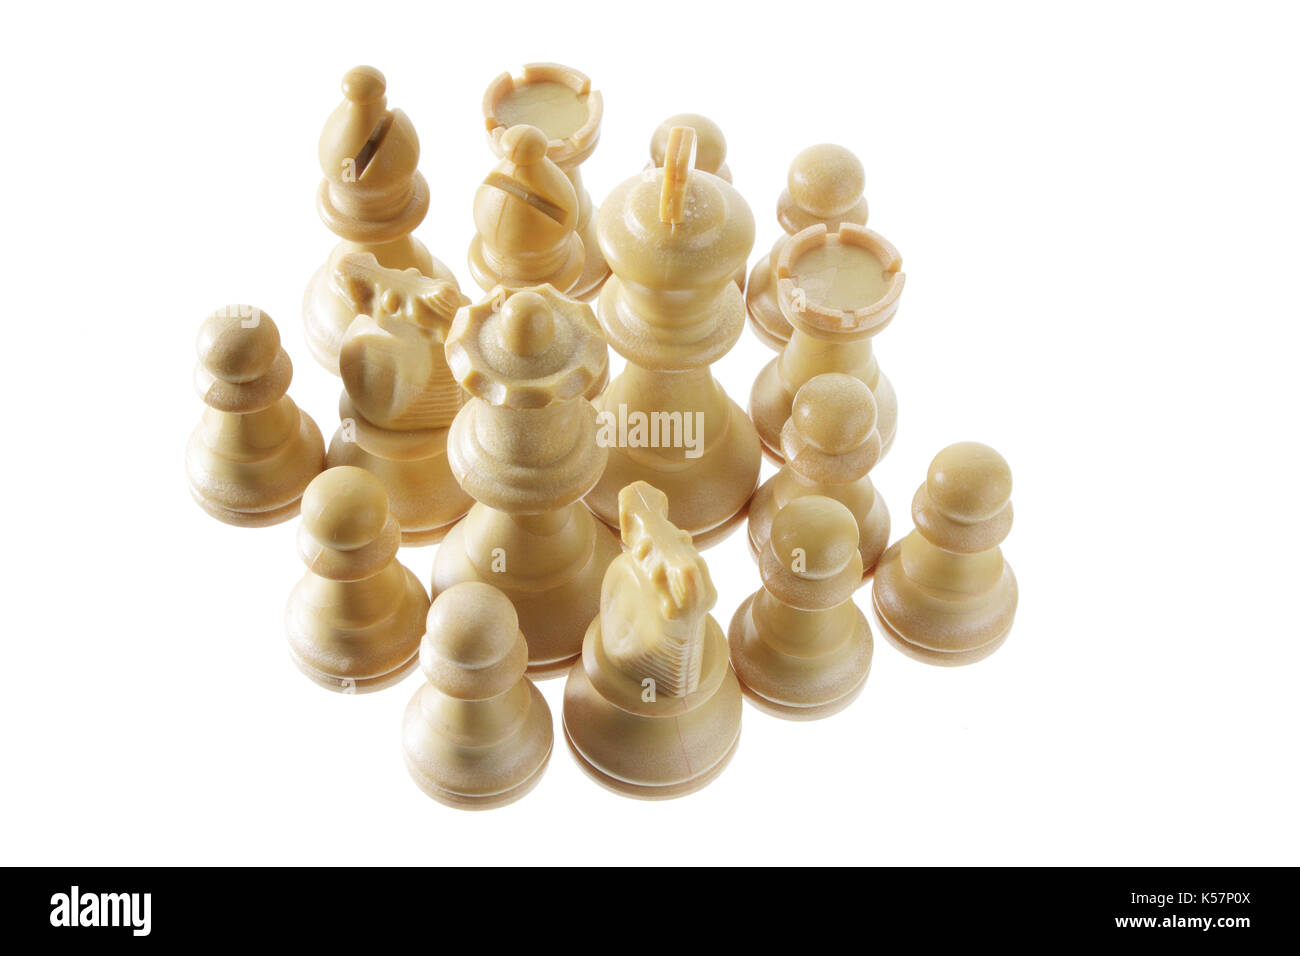 Chess Pieces on White Background - Stock Image